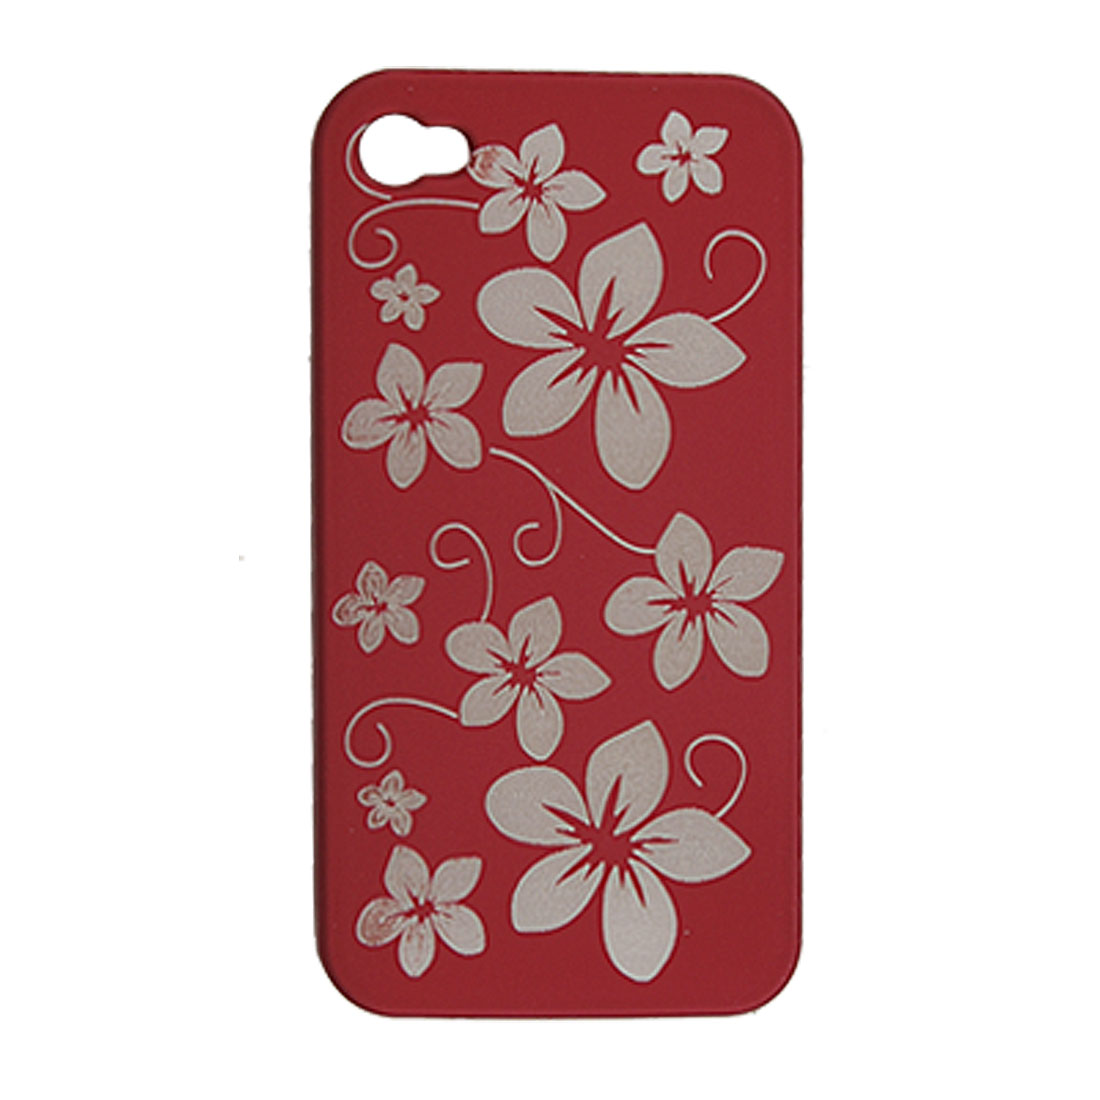 Maroon Rubberized Hard Plastic Carve Flower Case for iPhone 4G 4